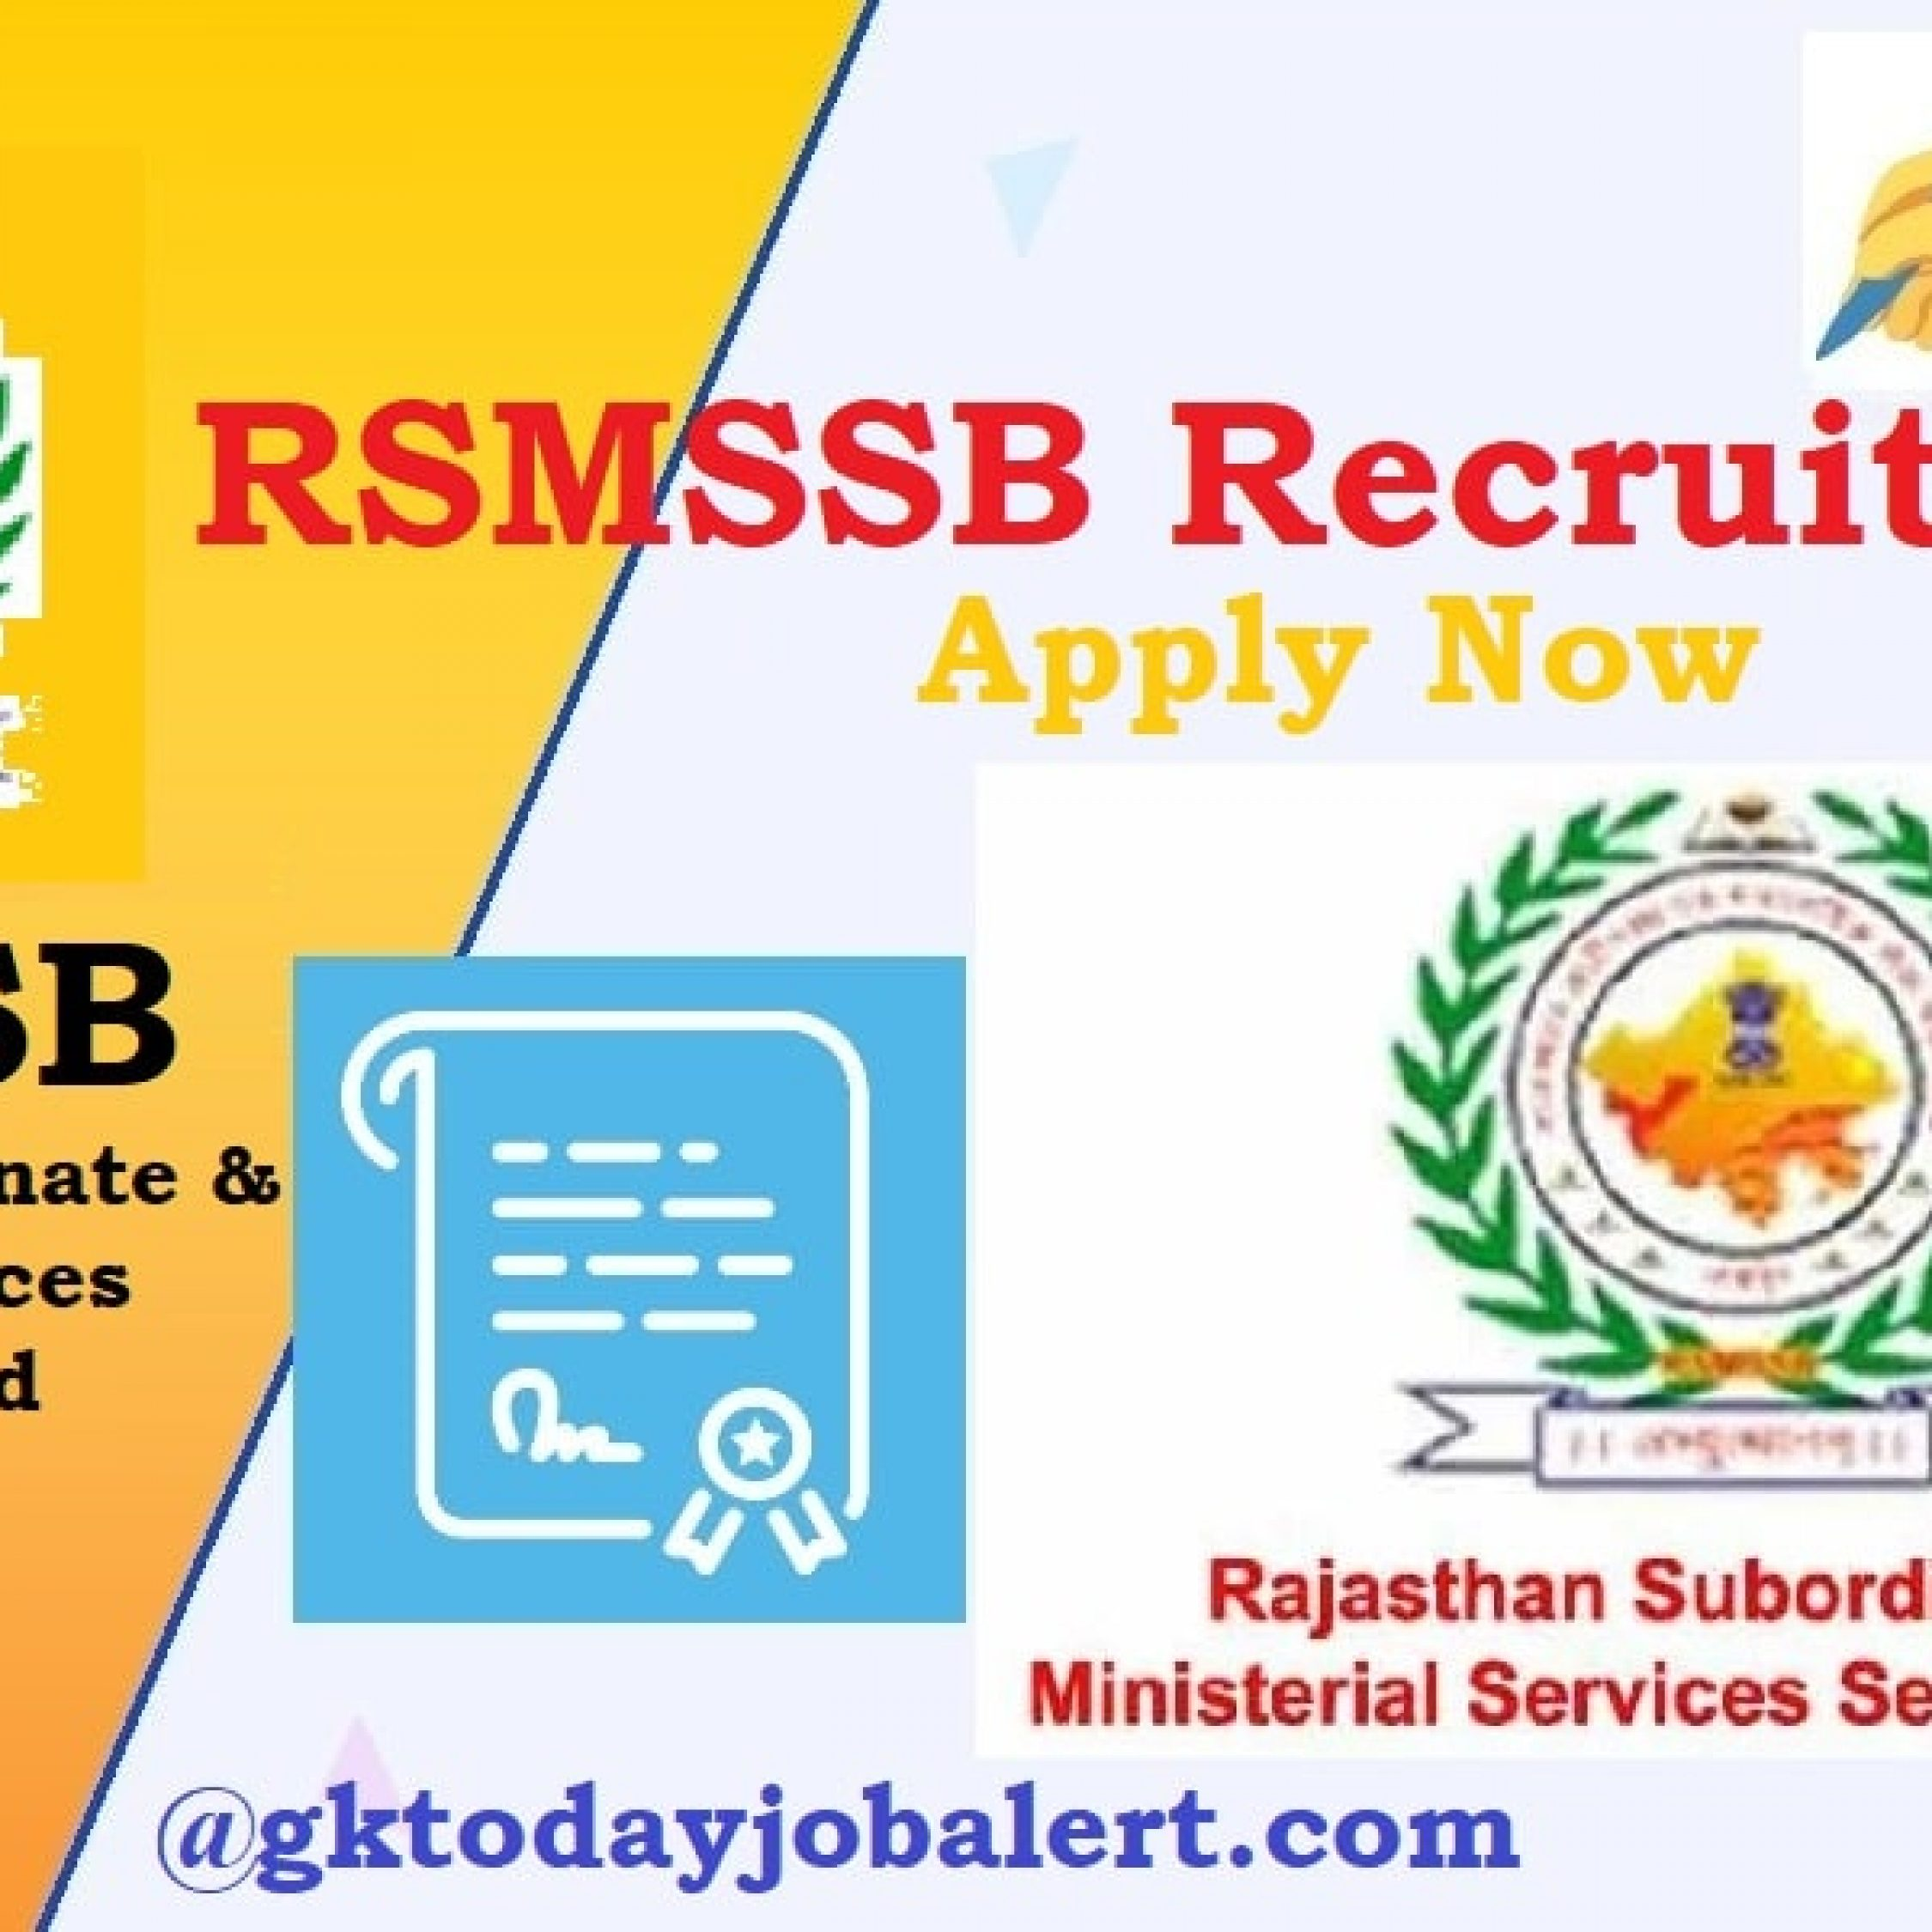 RSMSSB Recruitment 2020 – Apply Online for 1406 Stenographer & ECG Technician Posts Date Extended